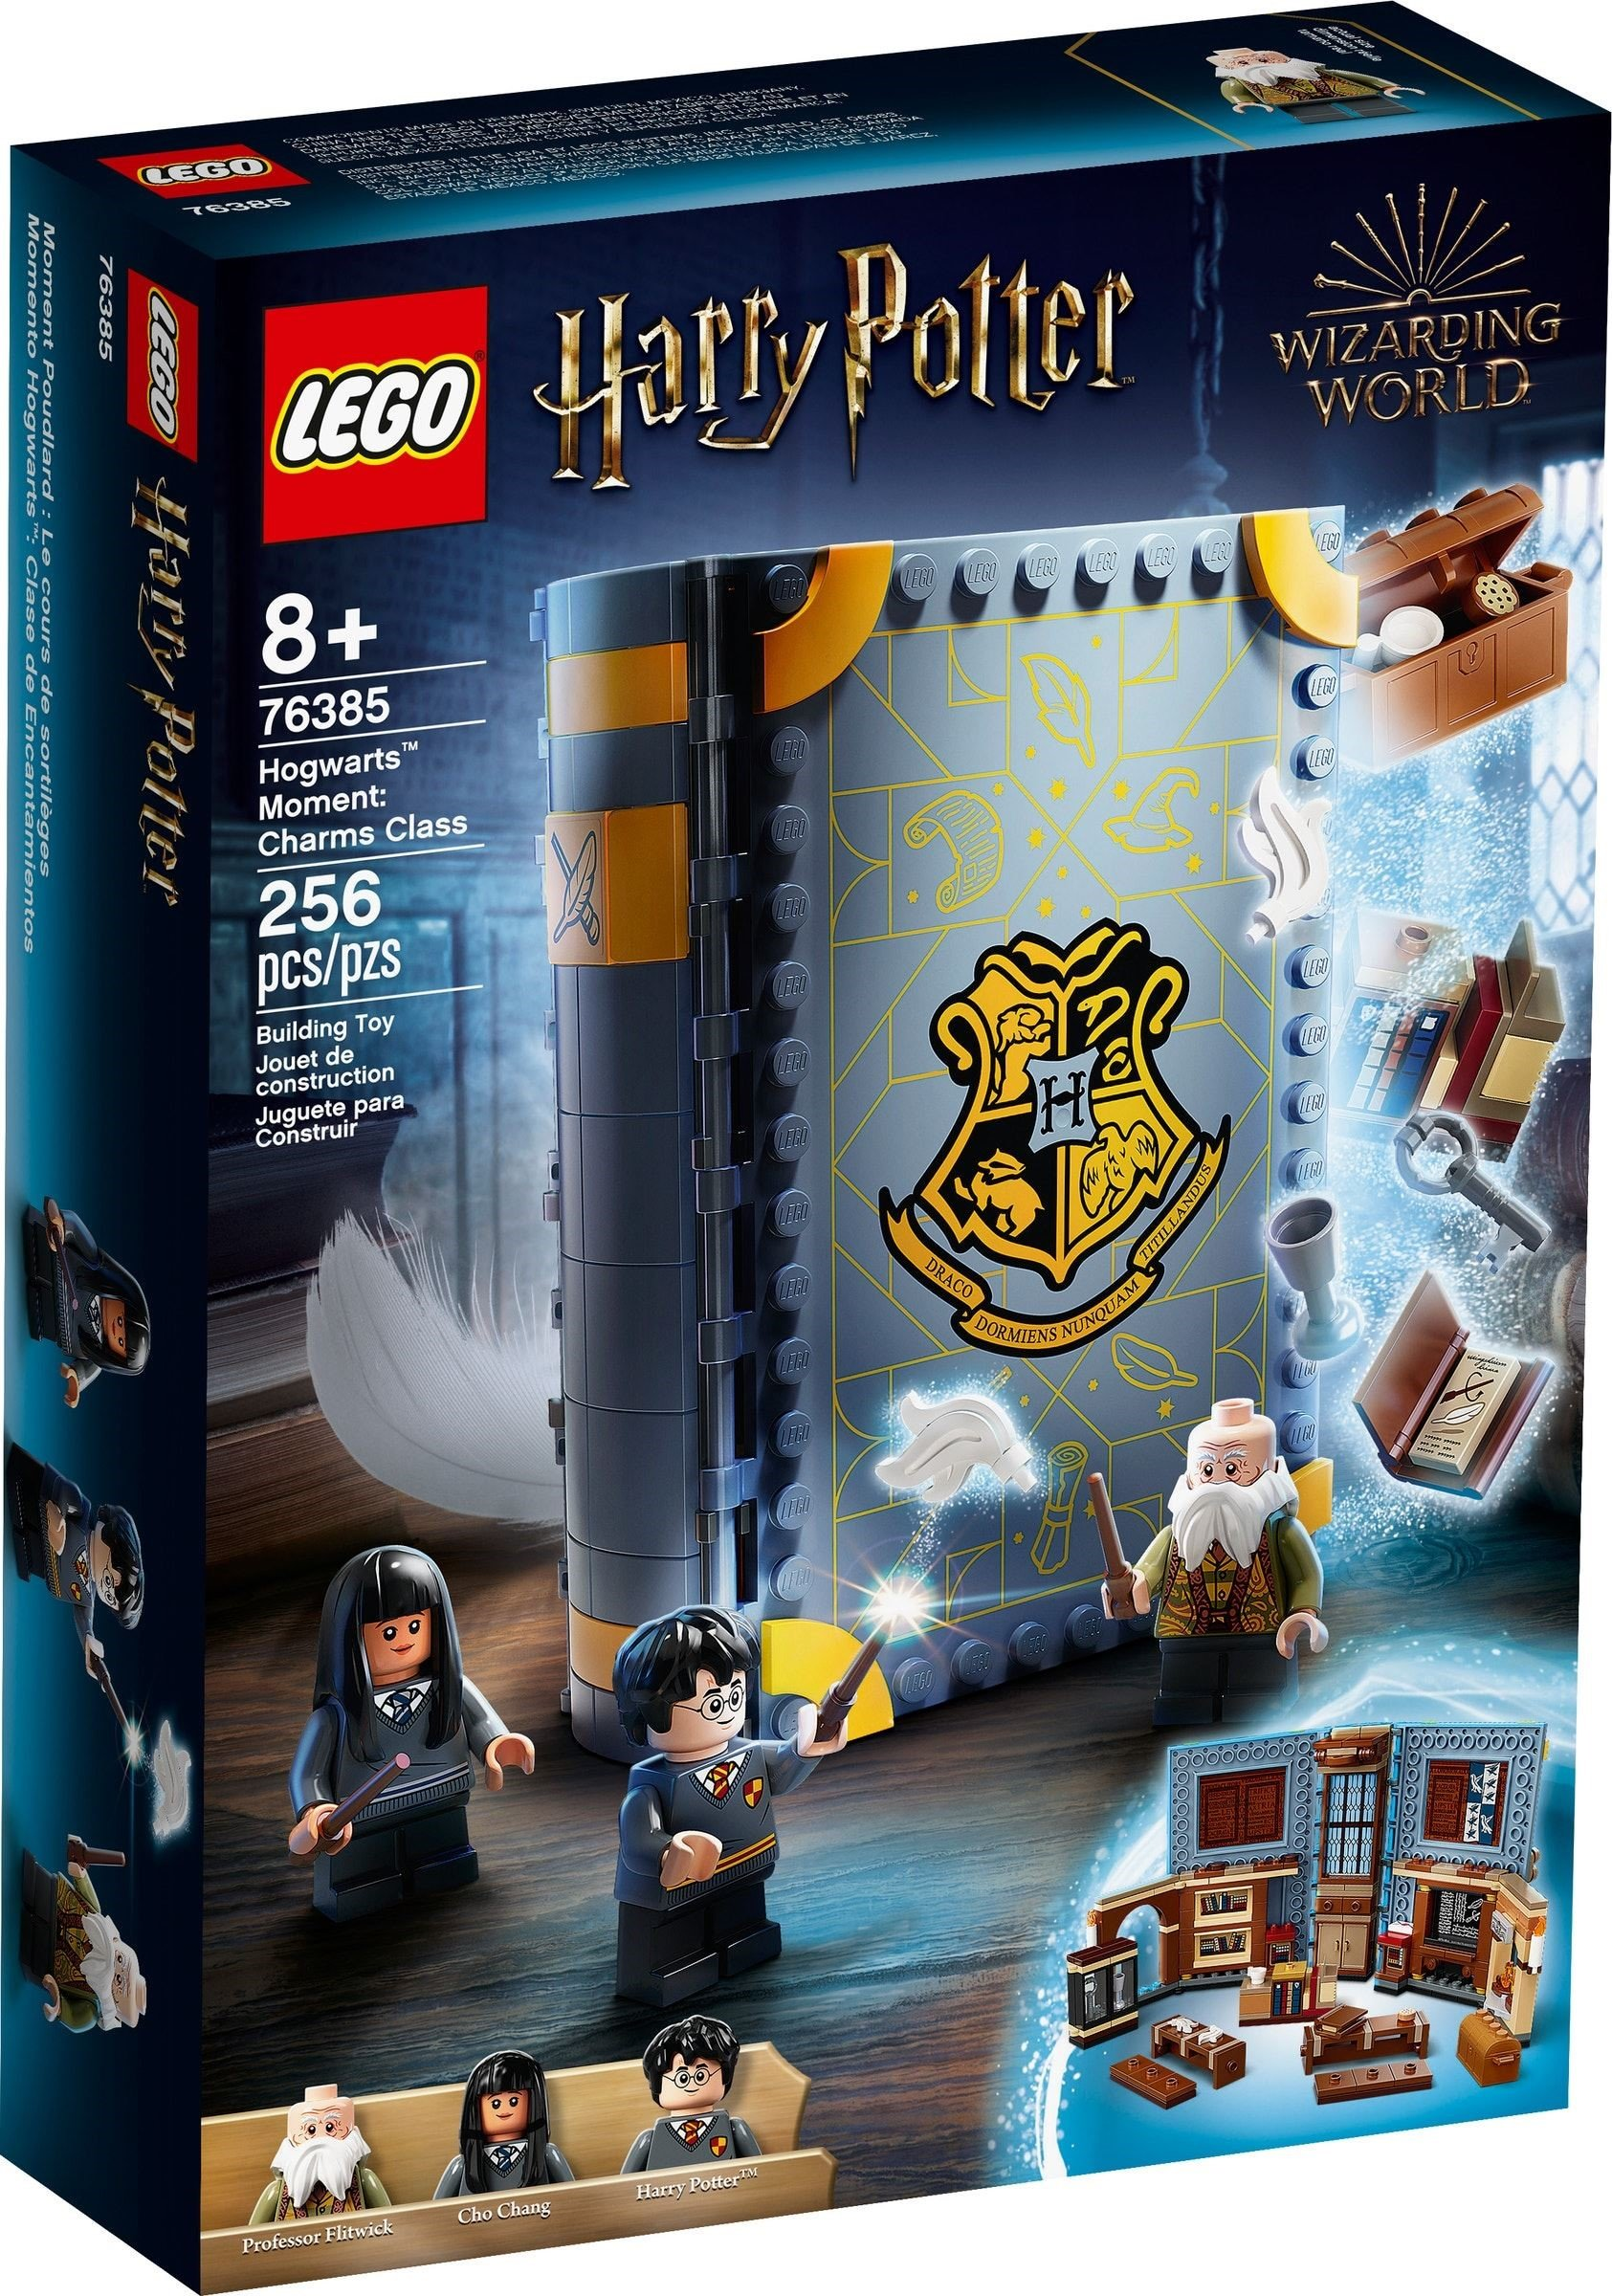 LEGO Harry Potter - Hogwarts™ Moment: Charms Class (76385)